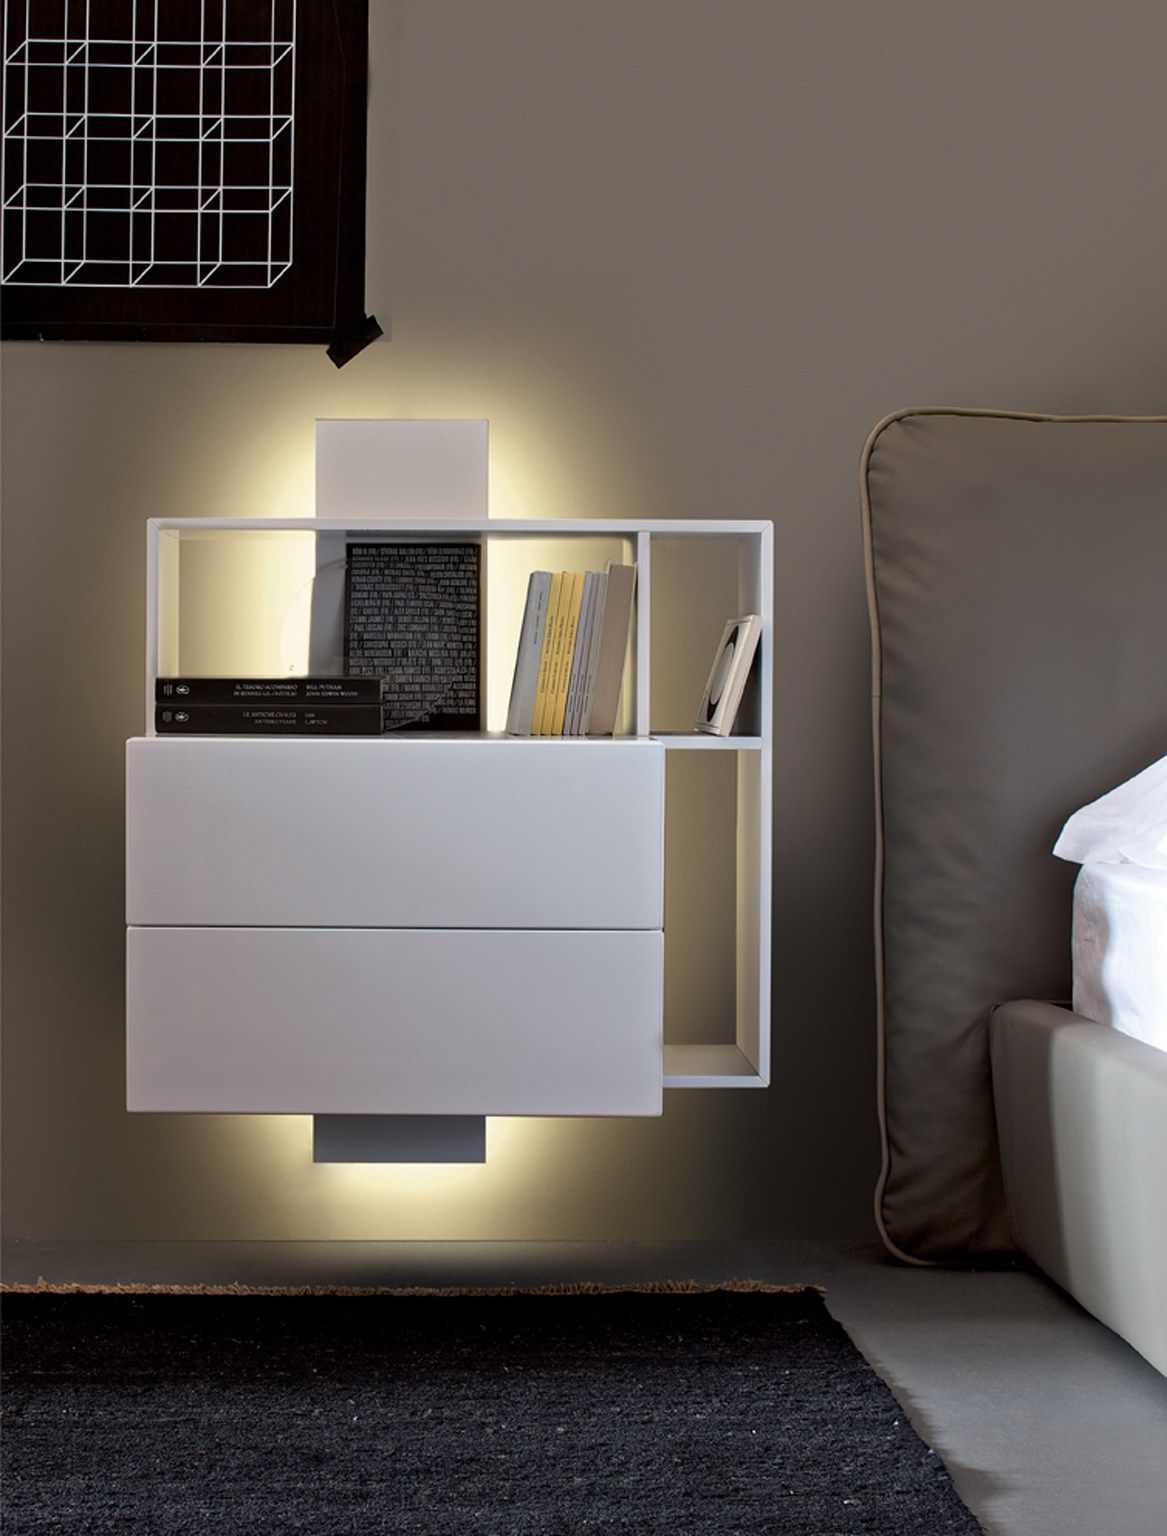 Wall Mounted Bedside Tables Wallmounted Bedside Table With Drawers Contatto Estel Casa Line